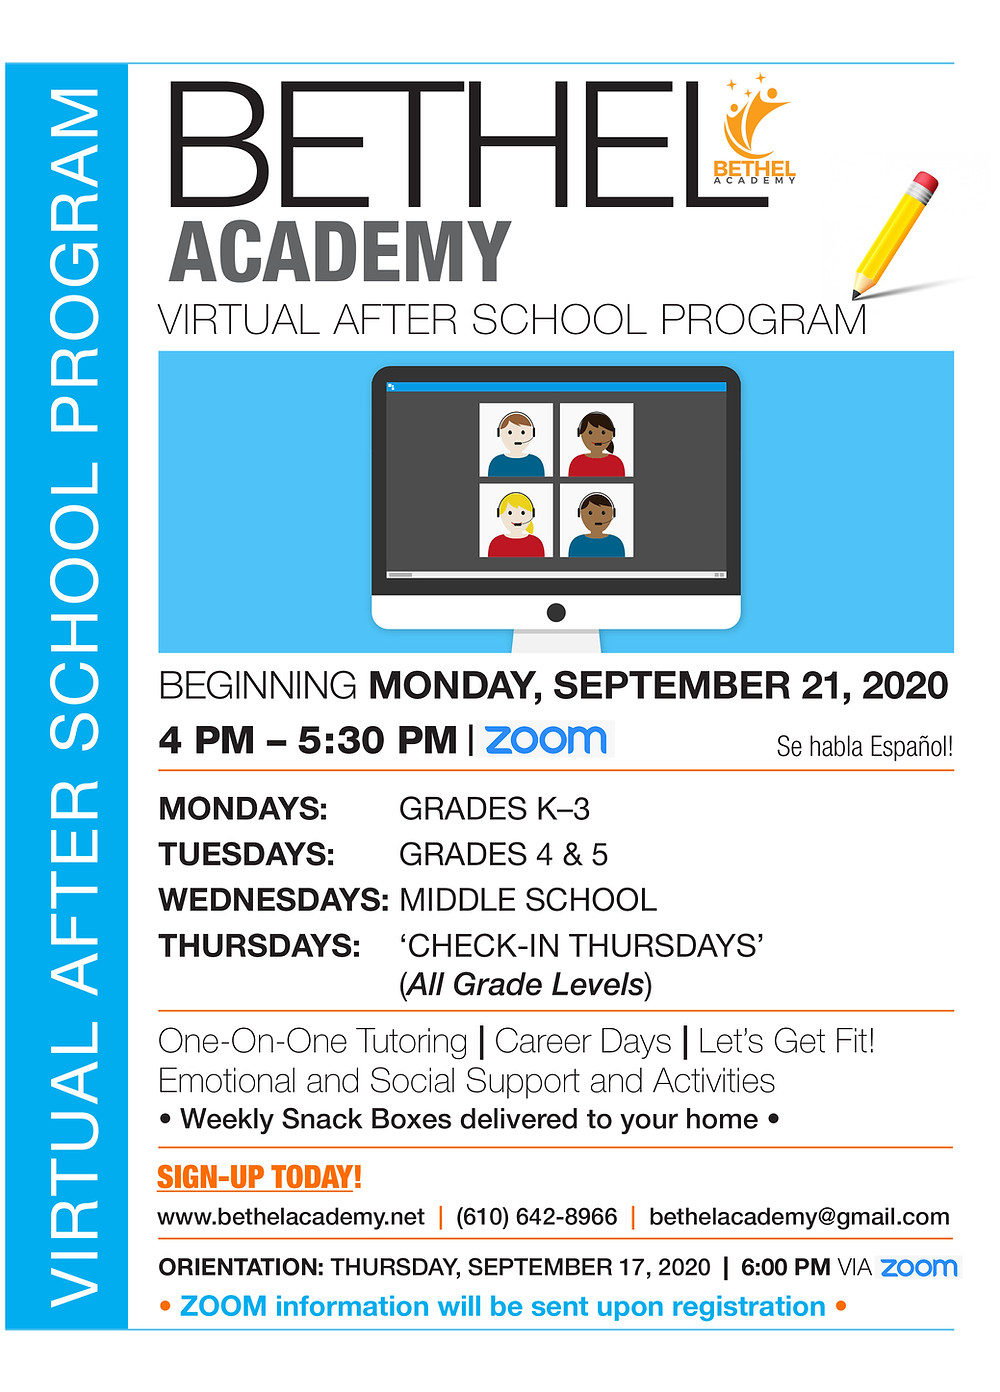 2020-2021 Bethel Academy Virtual After School Program Sign Up!